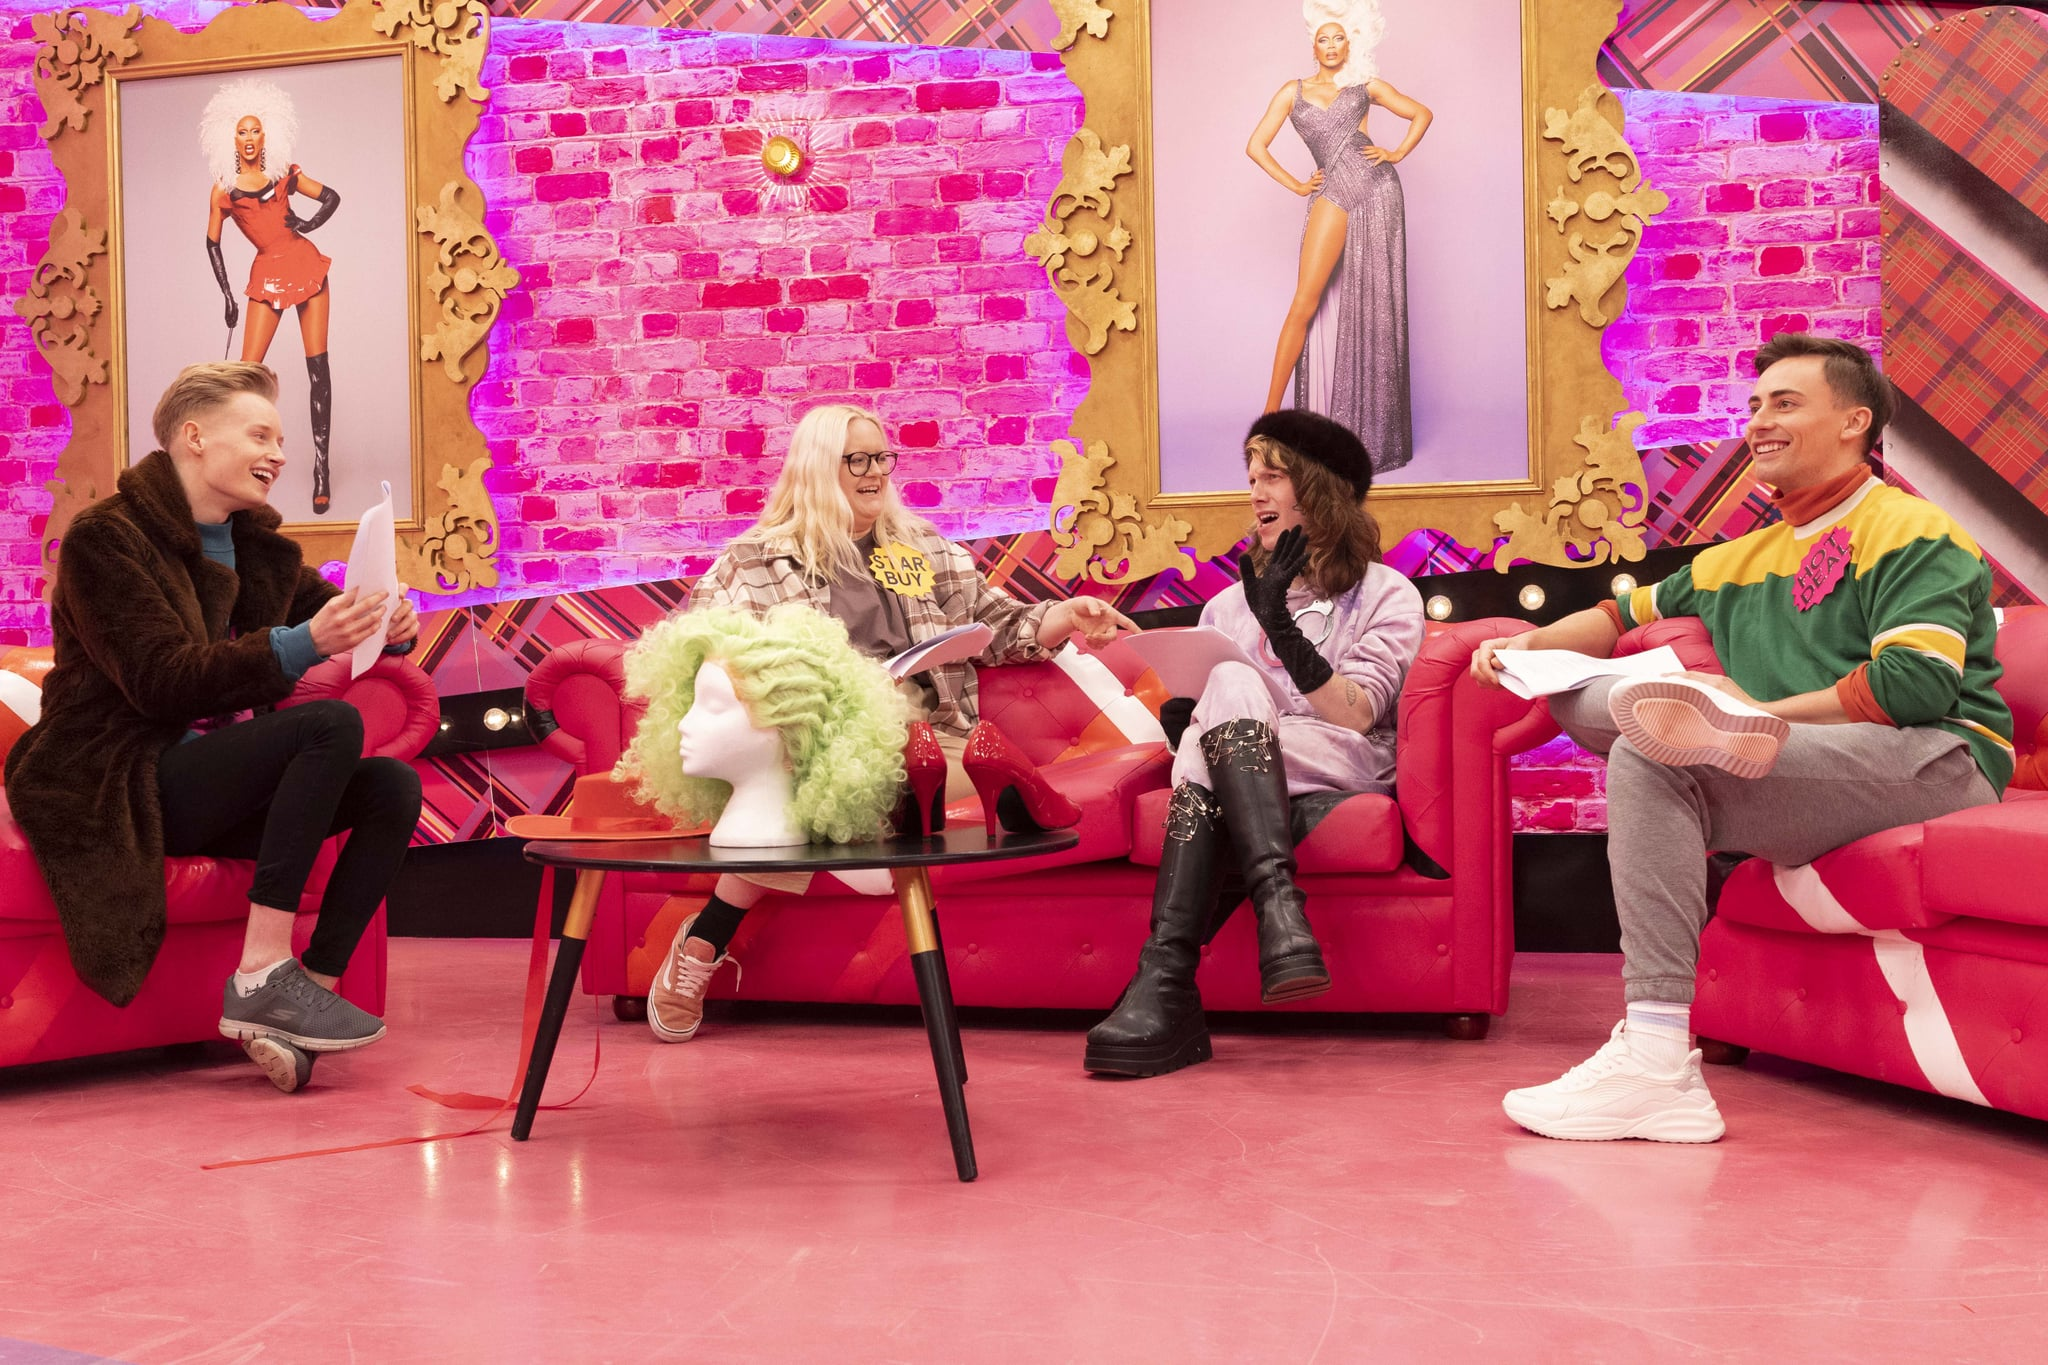 WARNING: Embargoed for publication until 20:00:00 on 30/09/2021 - Programme Name: RuPaul's Drag Race UK series 3 - TX: n/a - Episode: RuPaul's Drag Race UK series 3 ep2 (No. 2) - Picture Shows:  Scarlett Harlett, Victoria Scone, Charity Kase, Ella Vaday - (C) World of Wonder - Photographer: Guy Levy